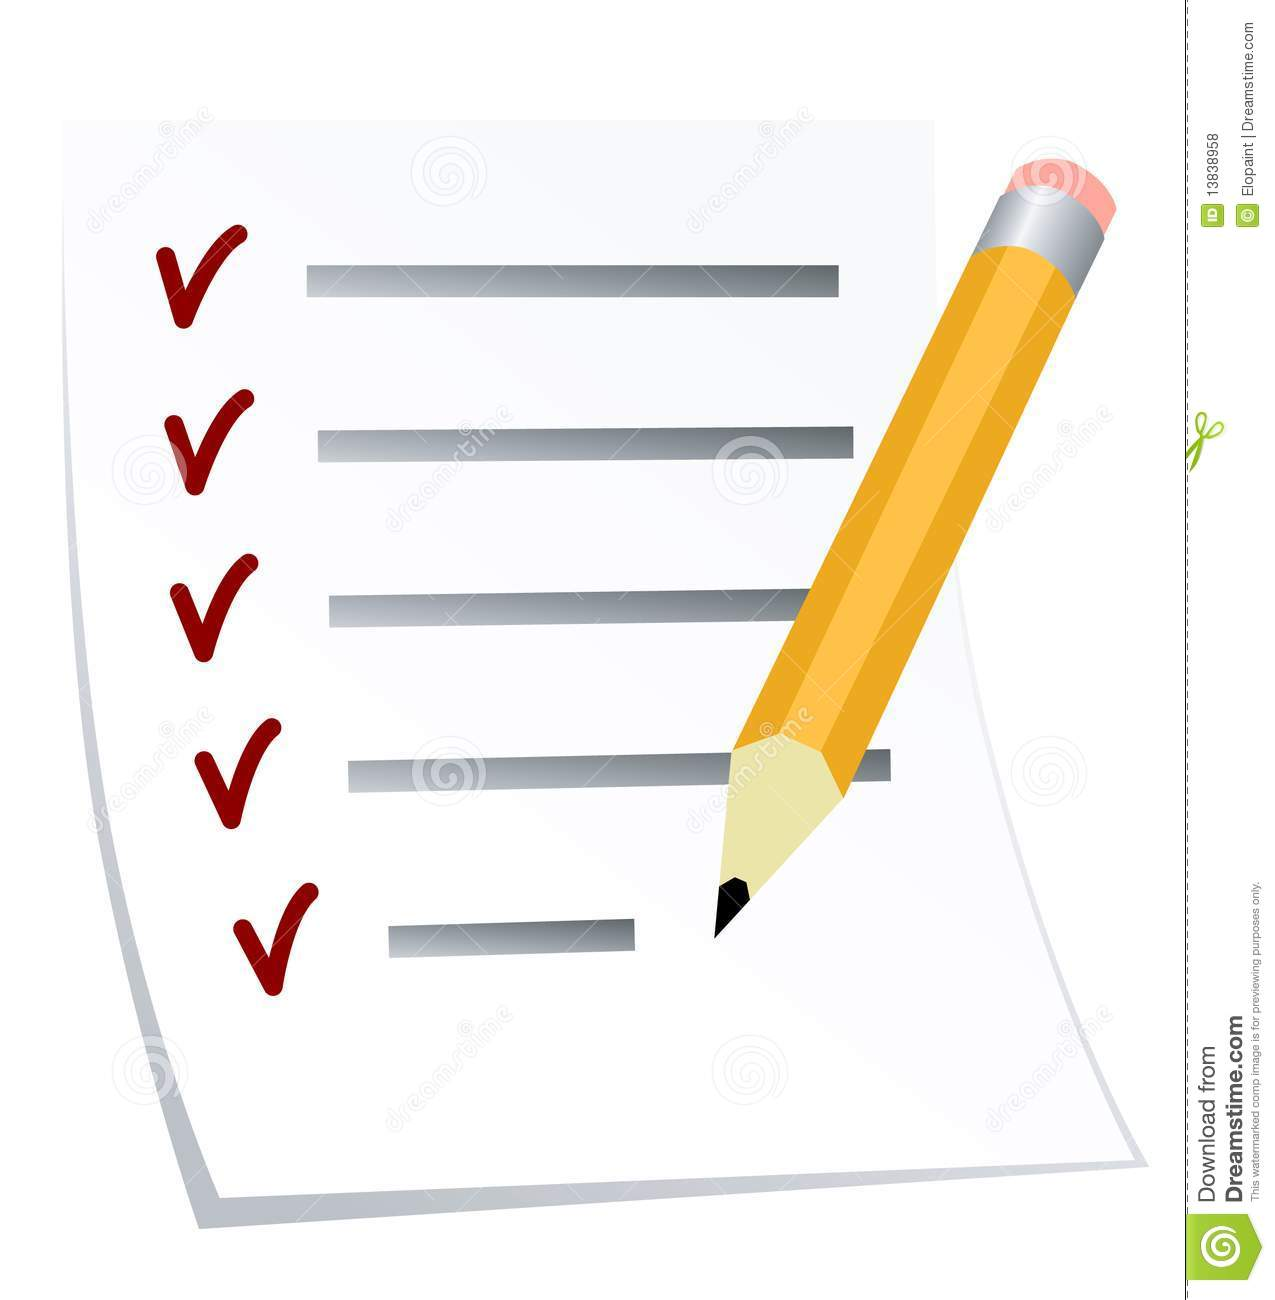 Todo List Royalty Free Stock Photos Image 13838958